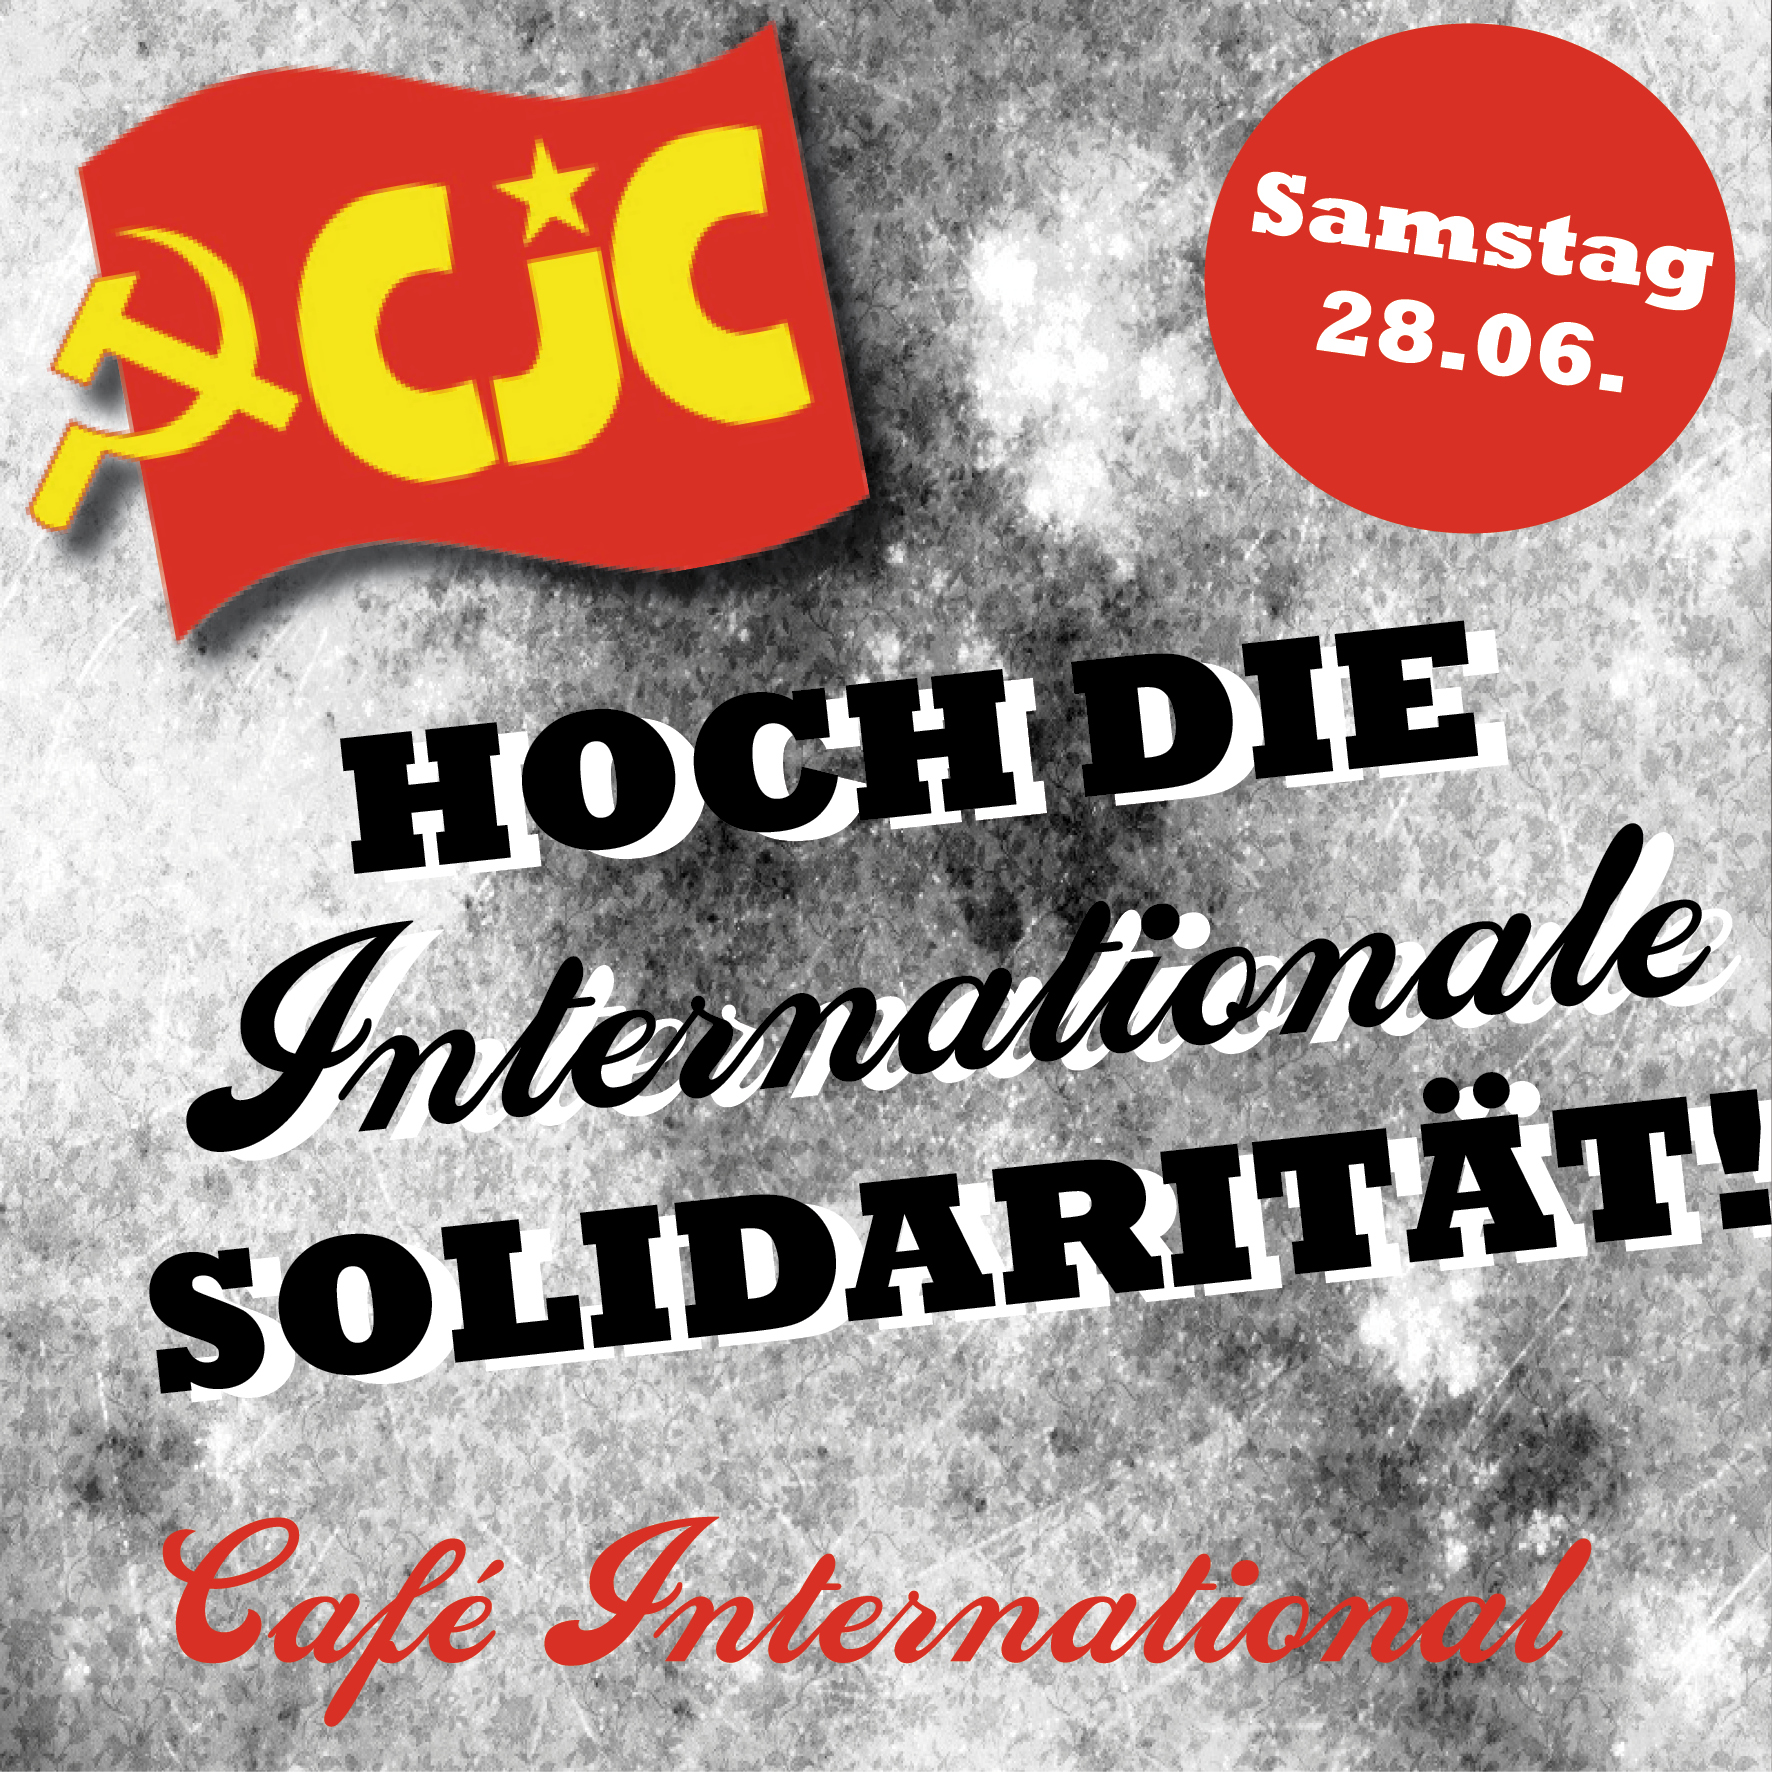 Hoch die internationale Solidarität!